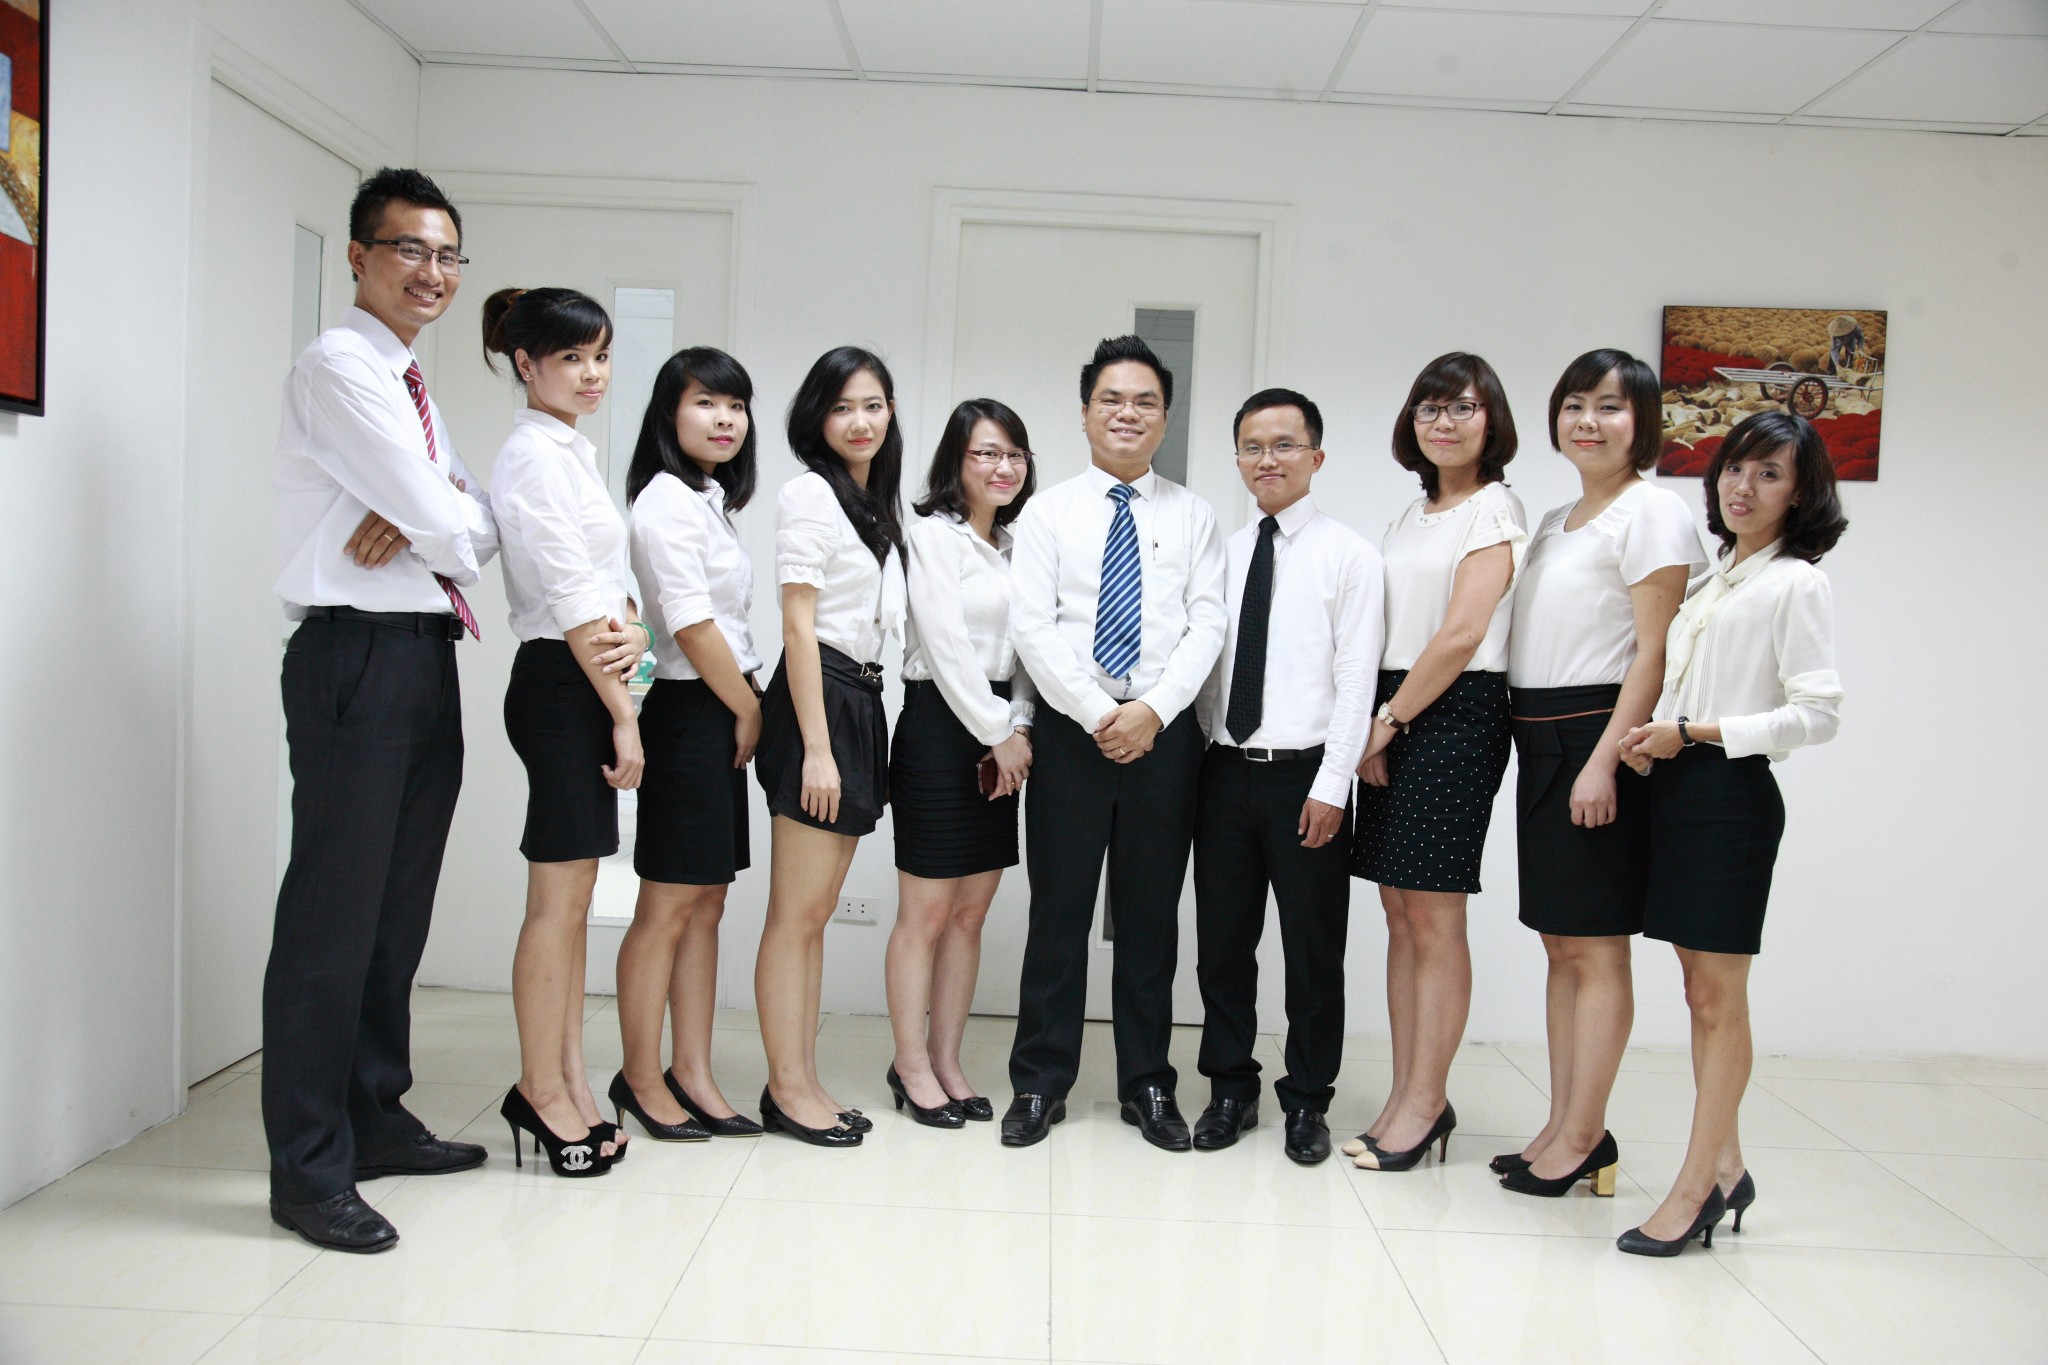 Lawyers and law practice in Vietnam